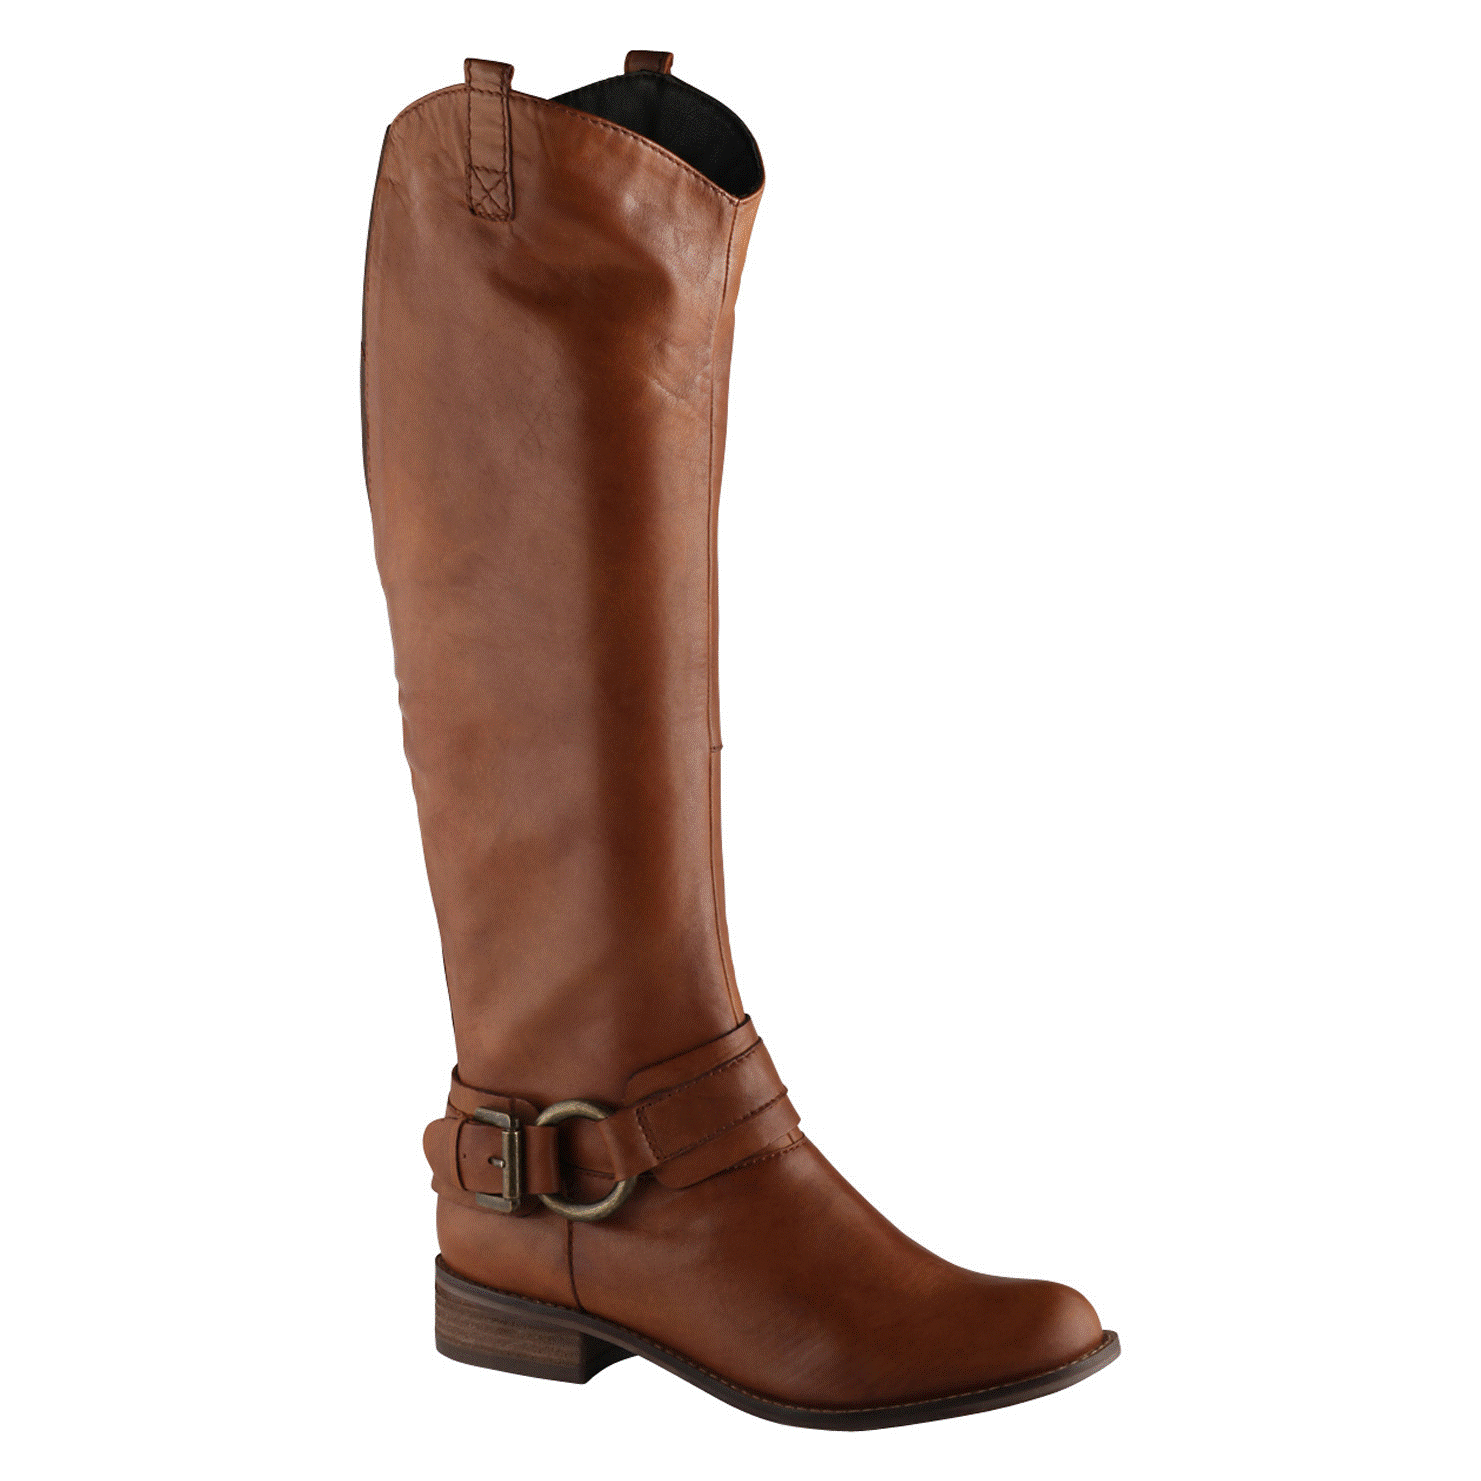 Knee-High-Boot-Fashion-Month-Aldo-Boots-Part-One-Flat-Boots-Rain-Boots-1 Stunning Collection of Aldo Boots